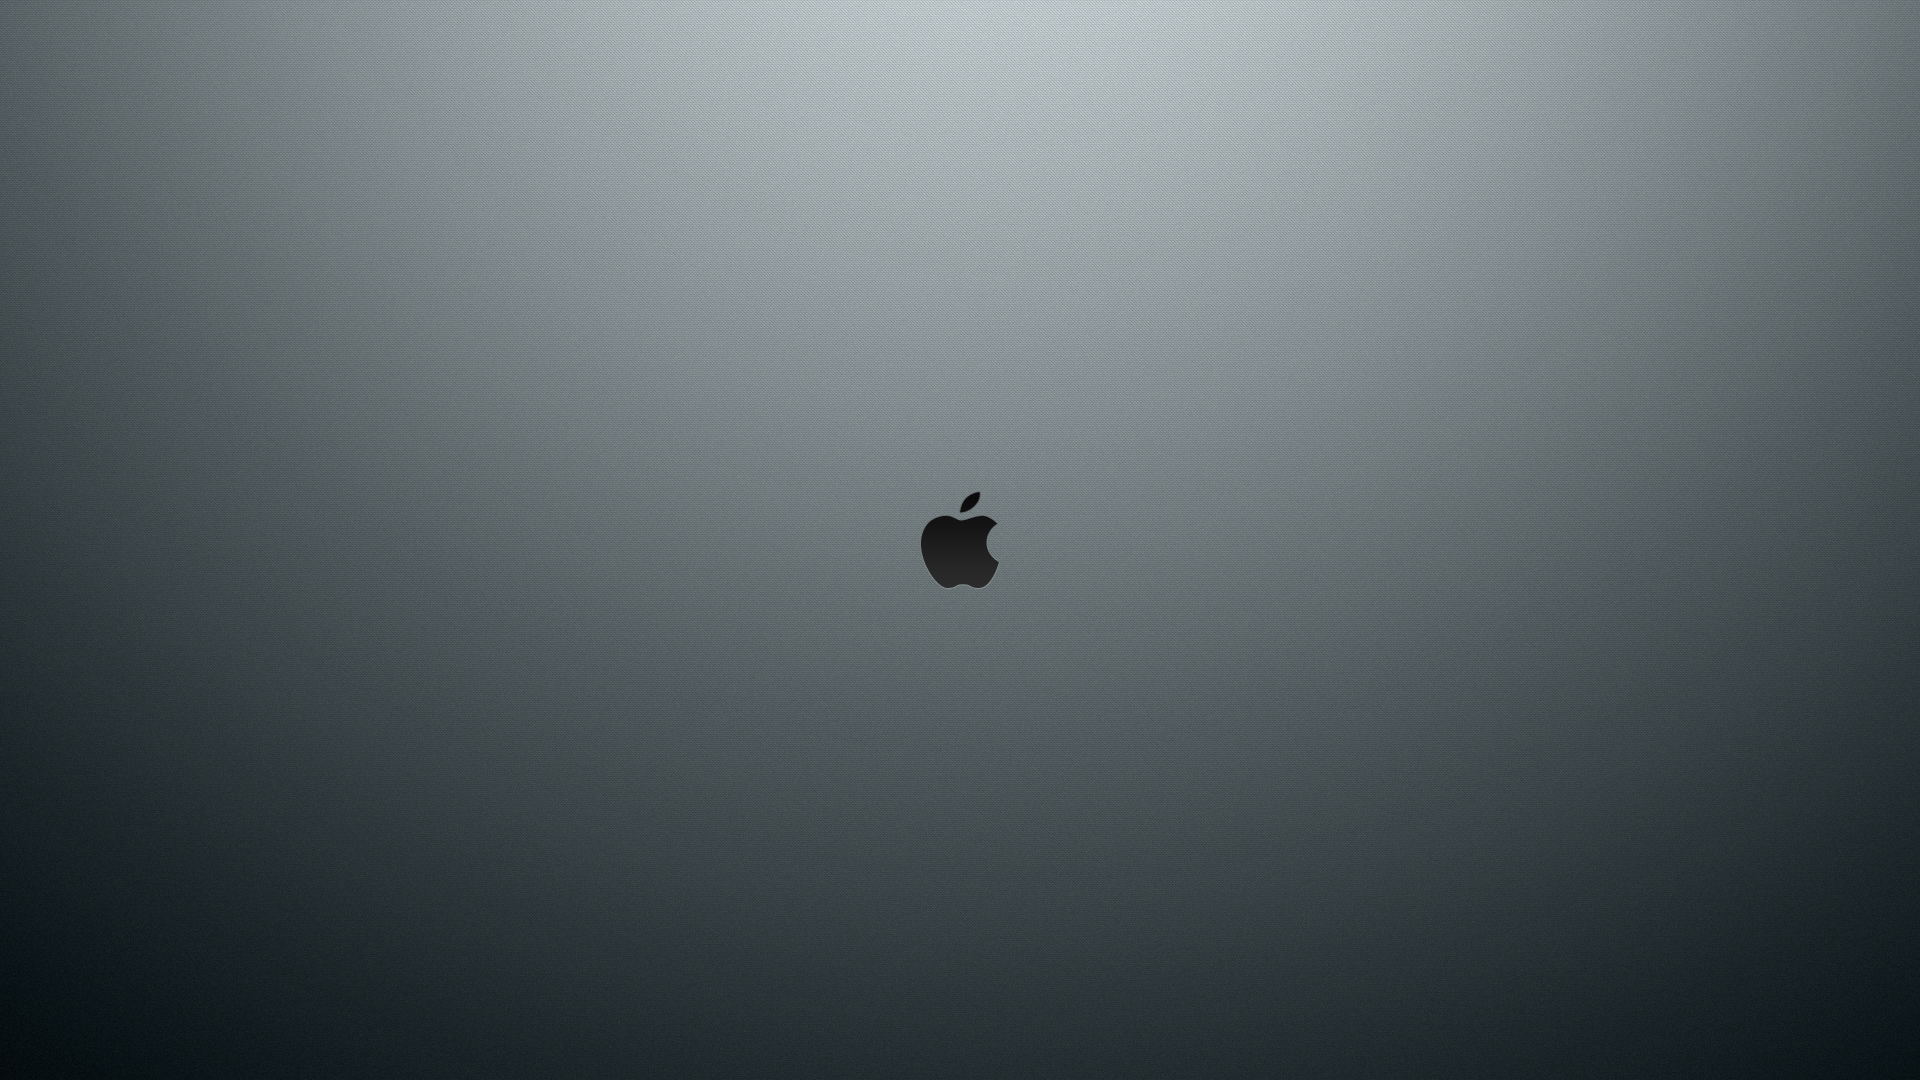 just the apple logo hd wallpapers